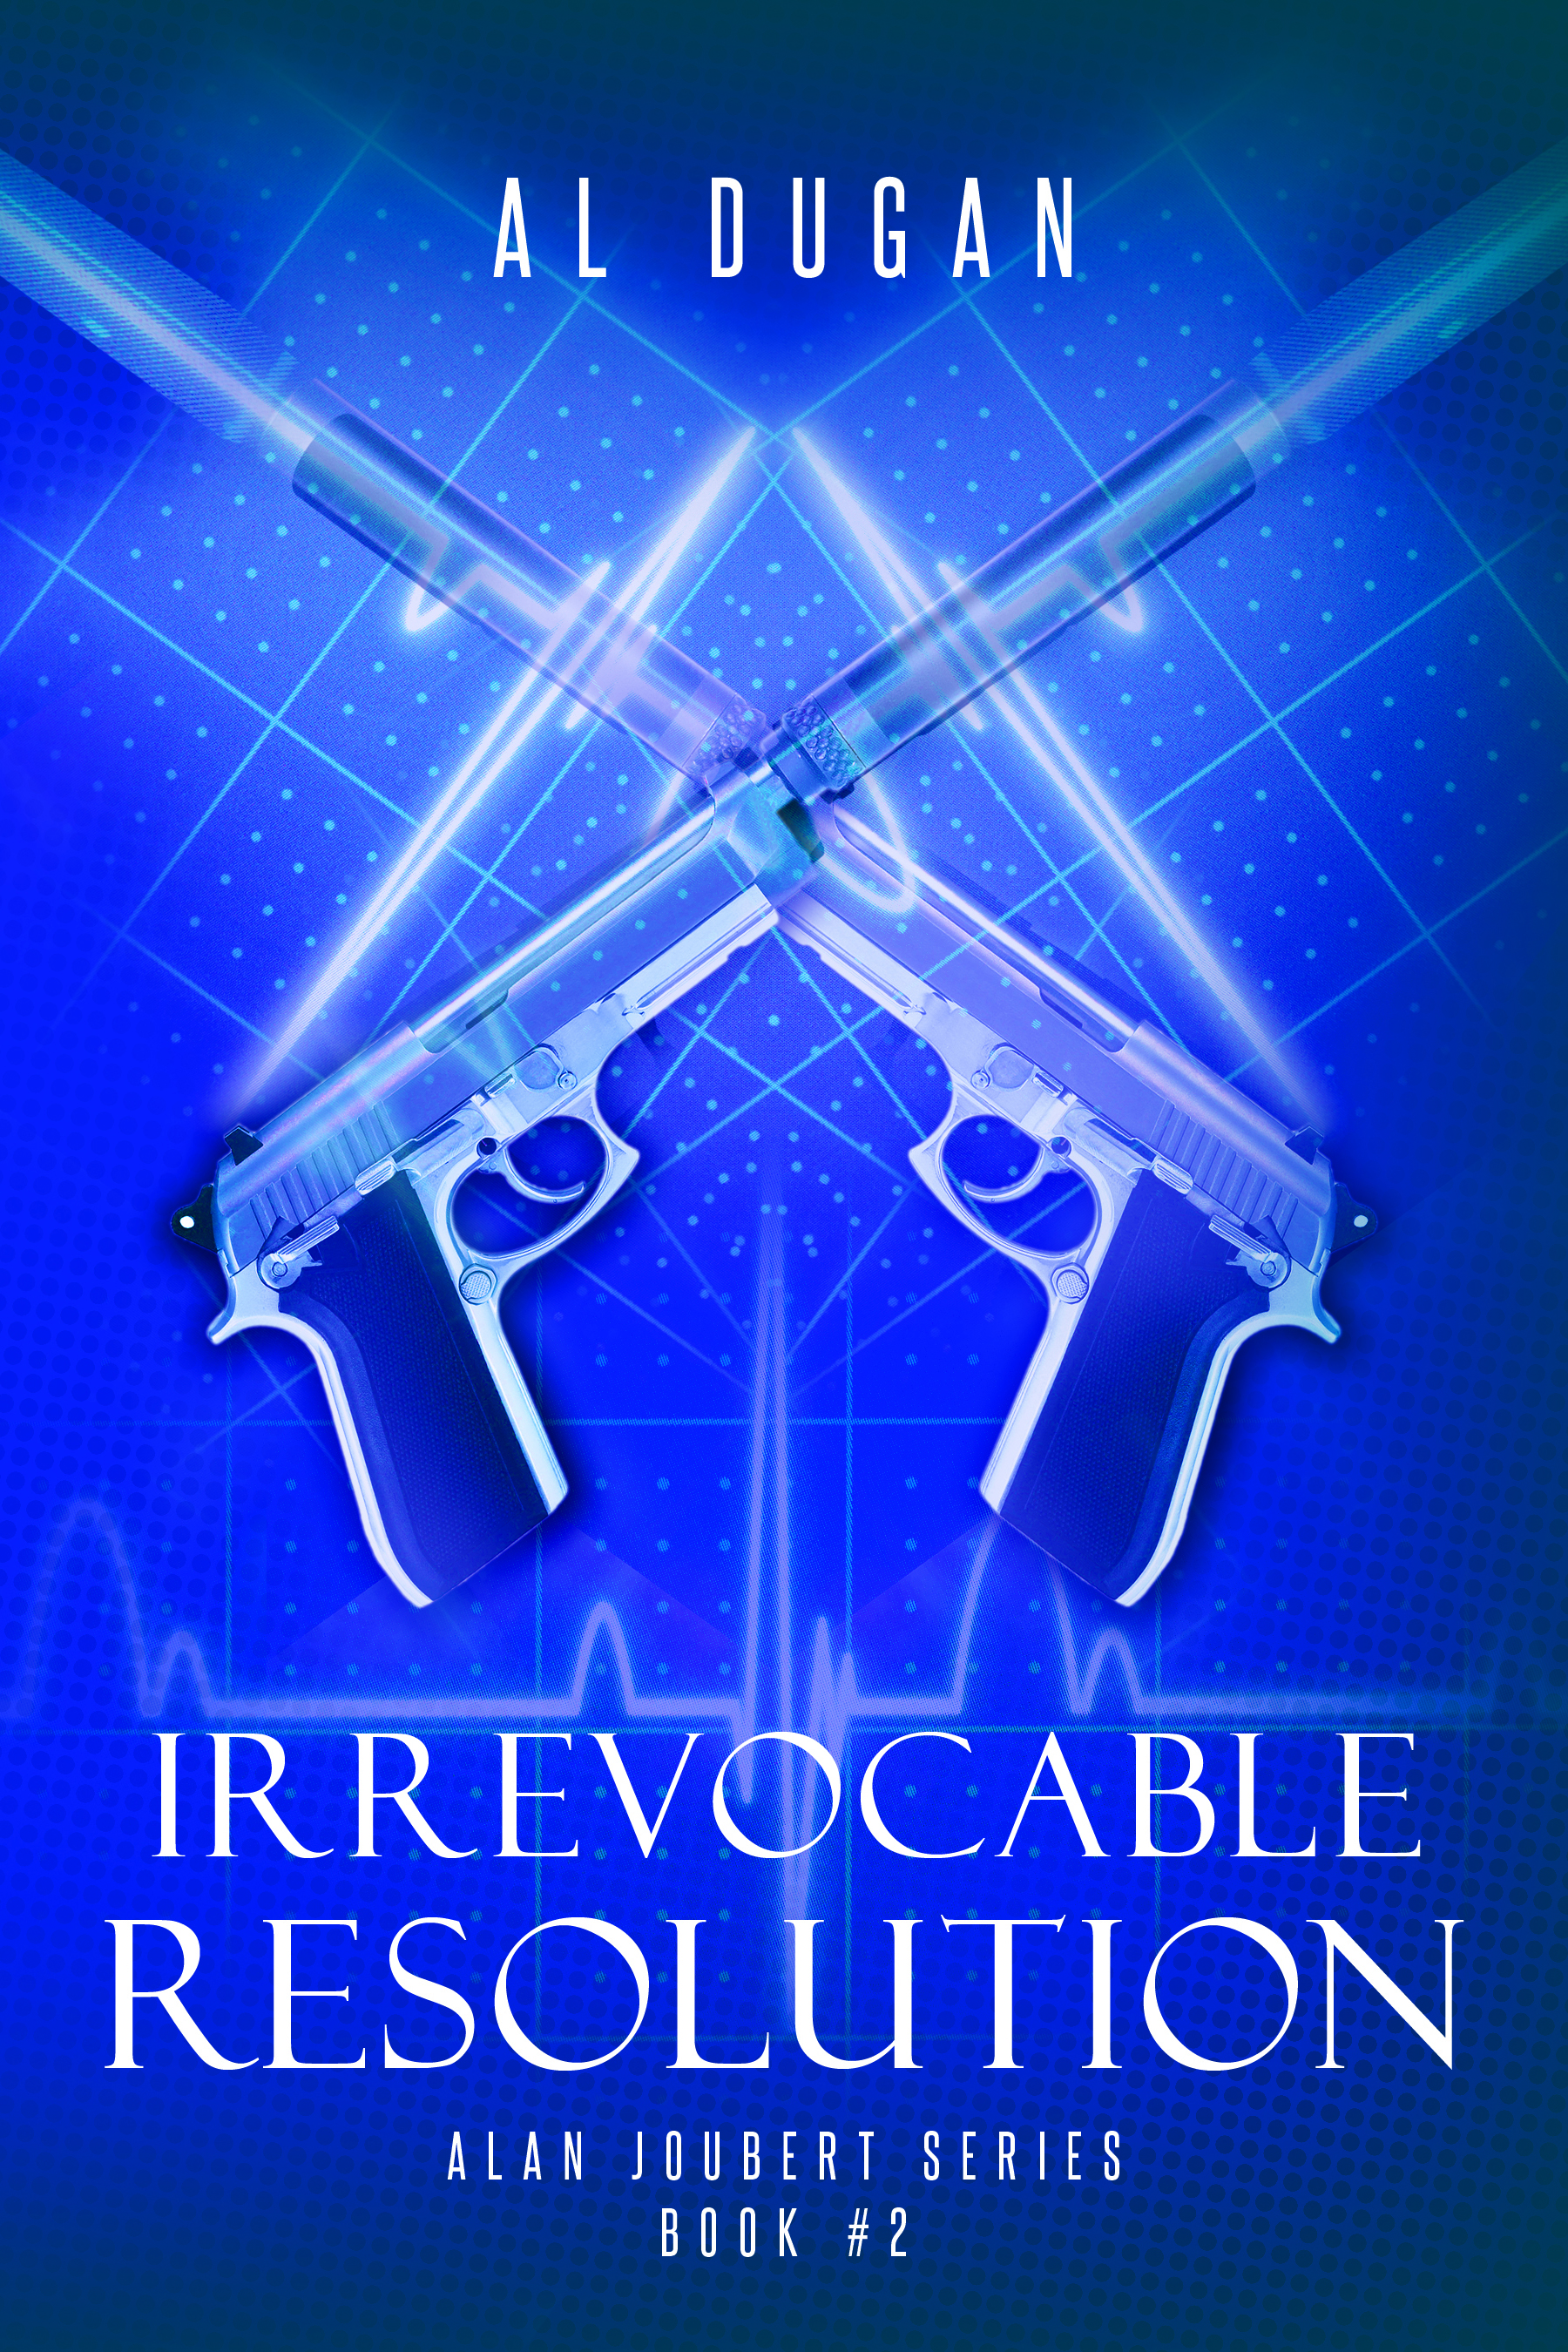 Irrevocable Resolution